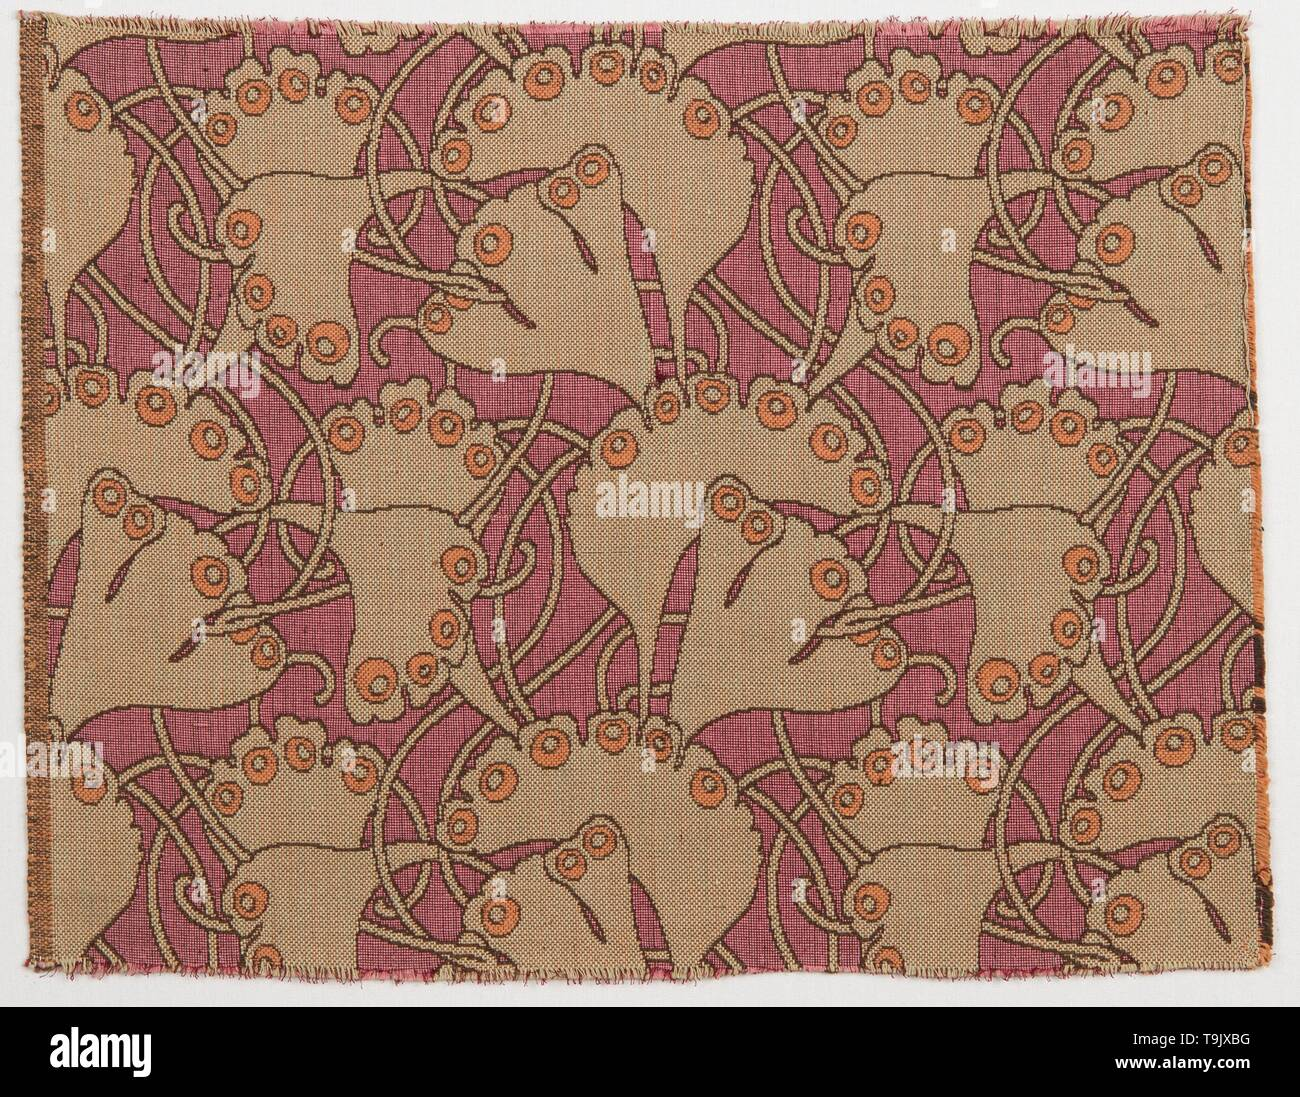 Textile design. Museum: Museum of Applied Arts, Vienna. Author: KOLOMAN MOSER. - Stock Image